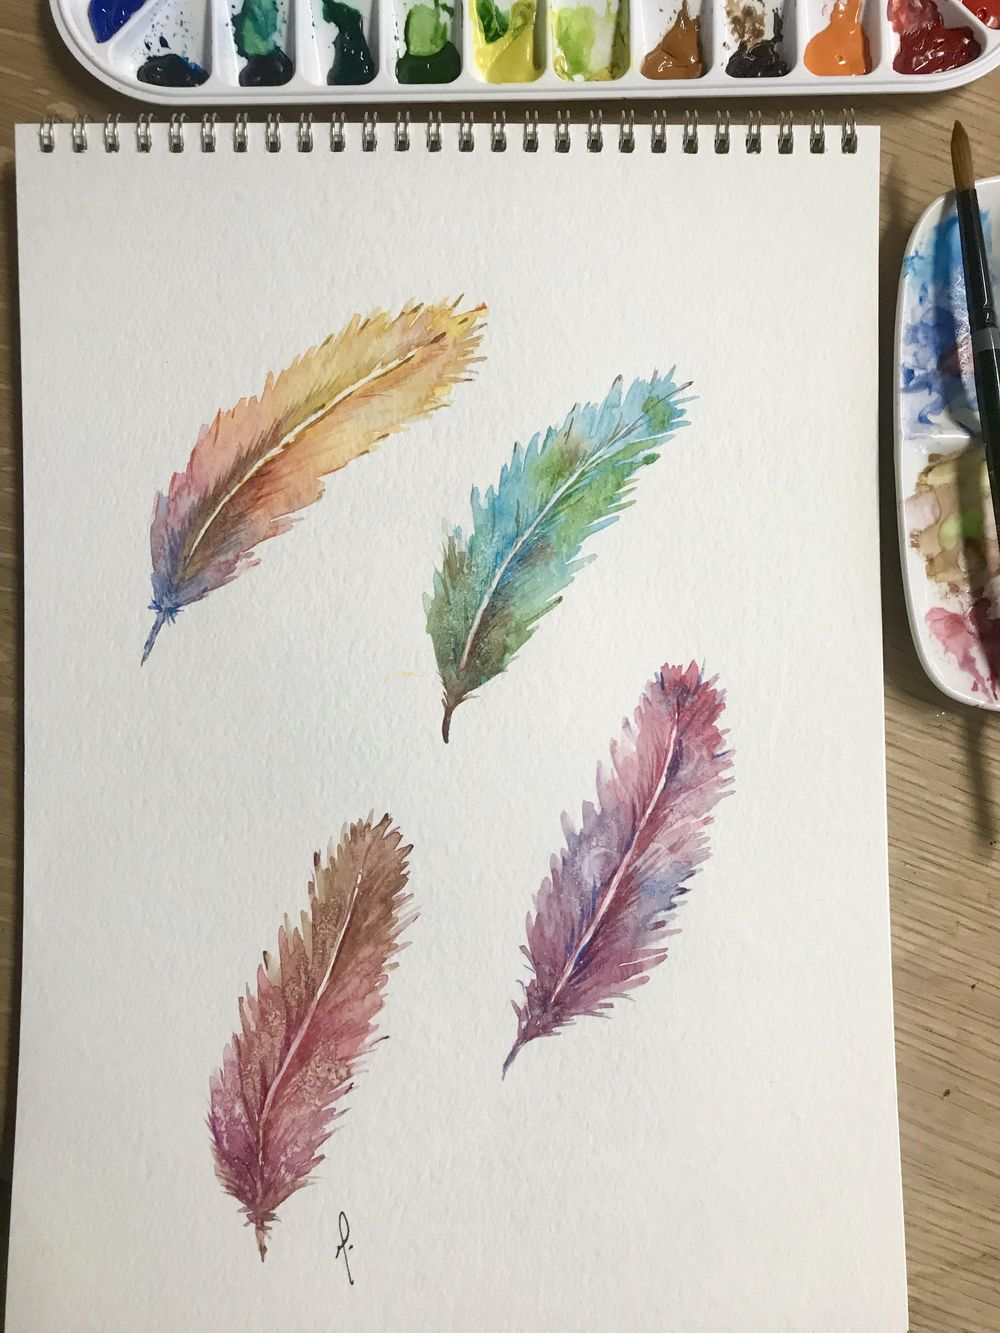 10 fun exercise in watercolor - image 4 - student project